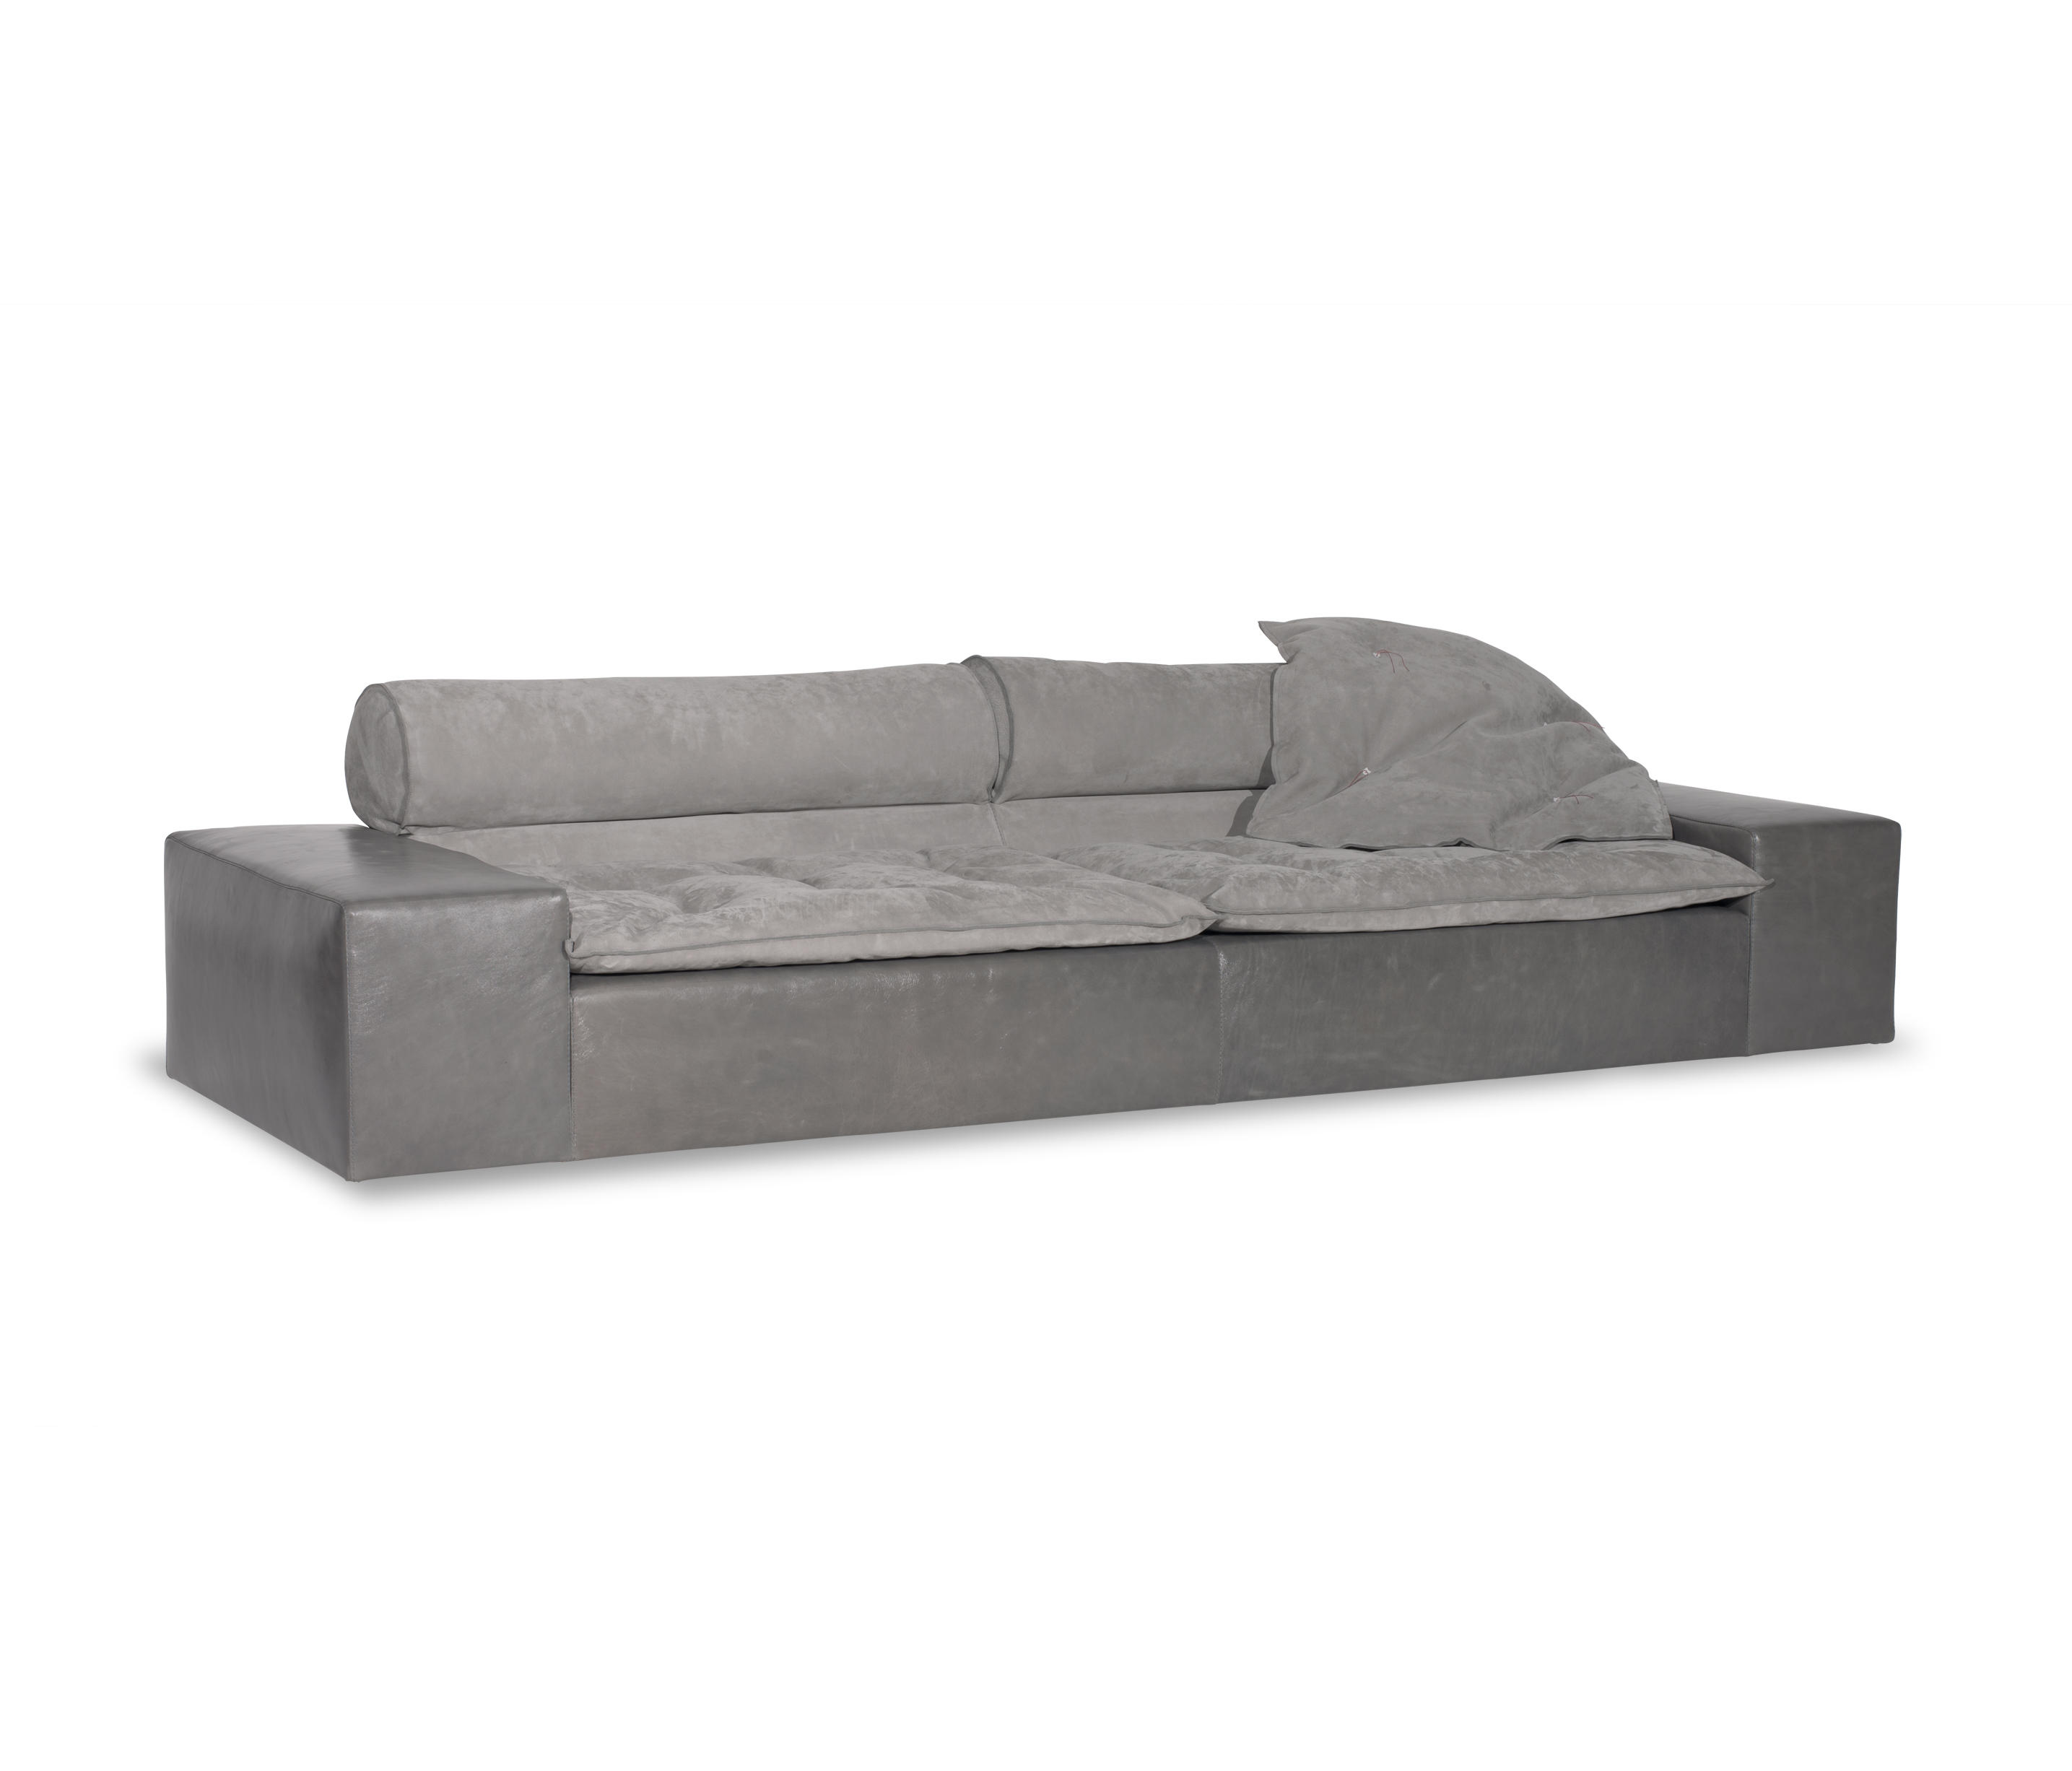 Sofa beds miami sofa bed miami farnichar sofa modani for Cheap modern furniture in miami